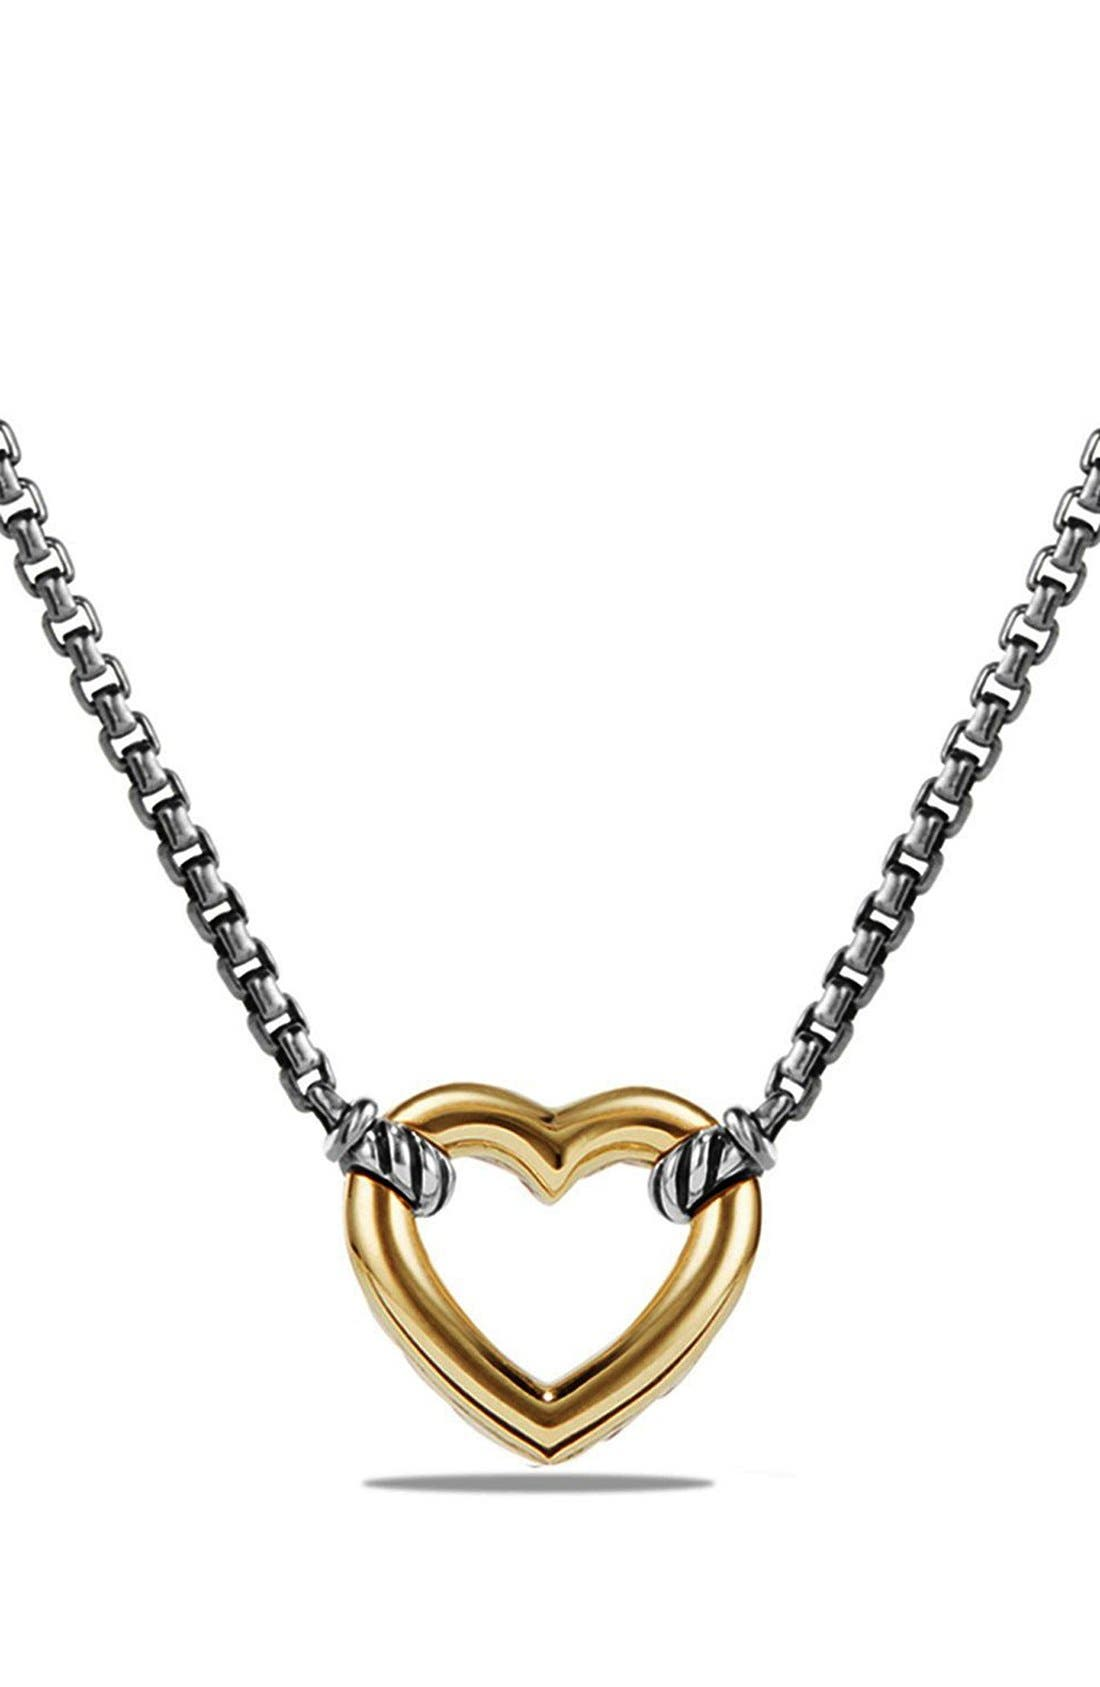 'Cable Collectibles' Heart Station Necklace with 18K Gold,                             Main thumbnail 1, color,                             SILVER/ GOLD